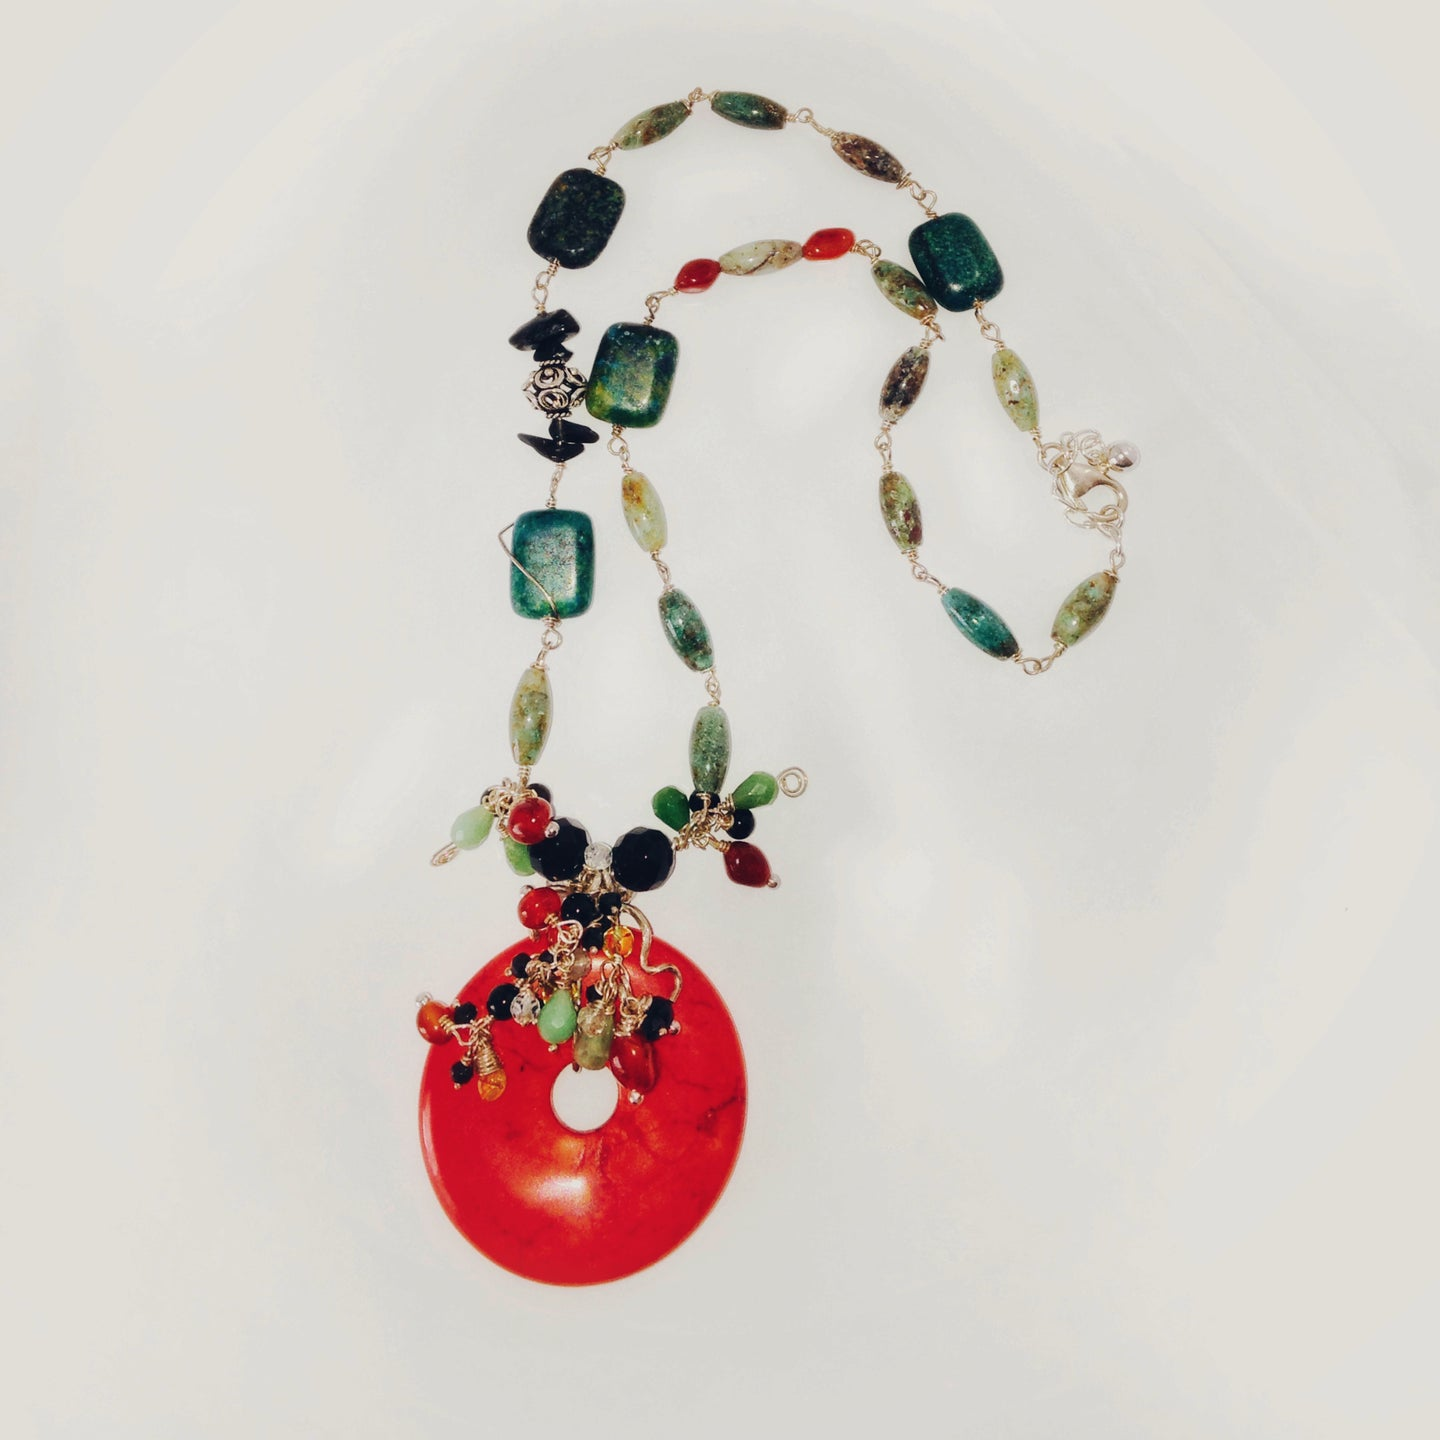 One of a kind necklace in sterling silver and gemstones by Buckaroo Bling